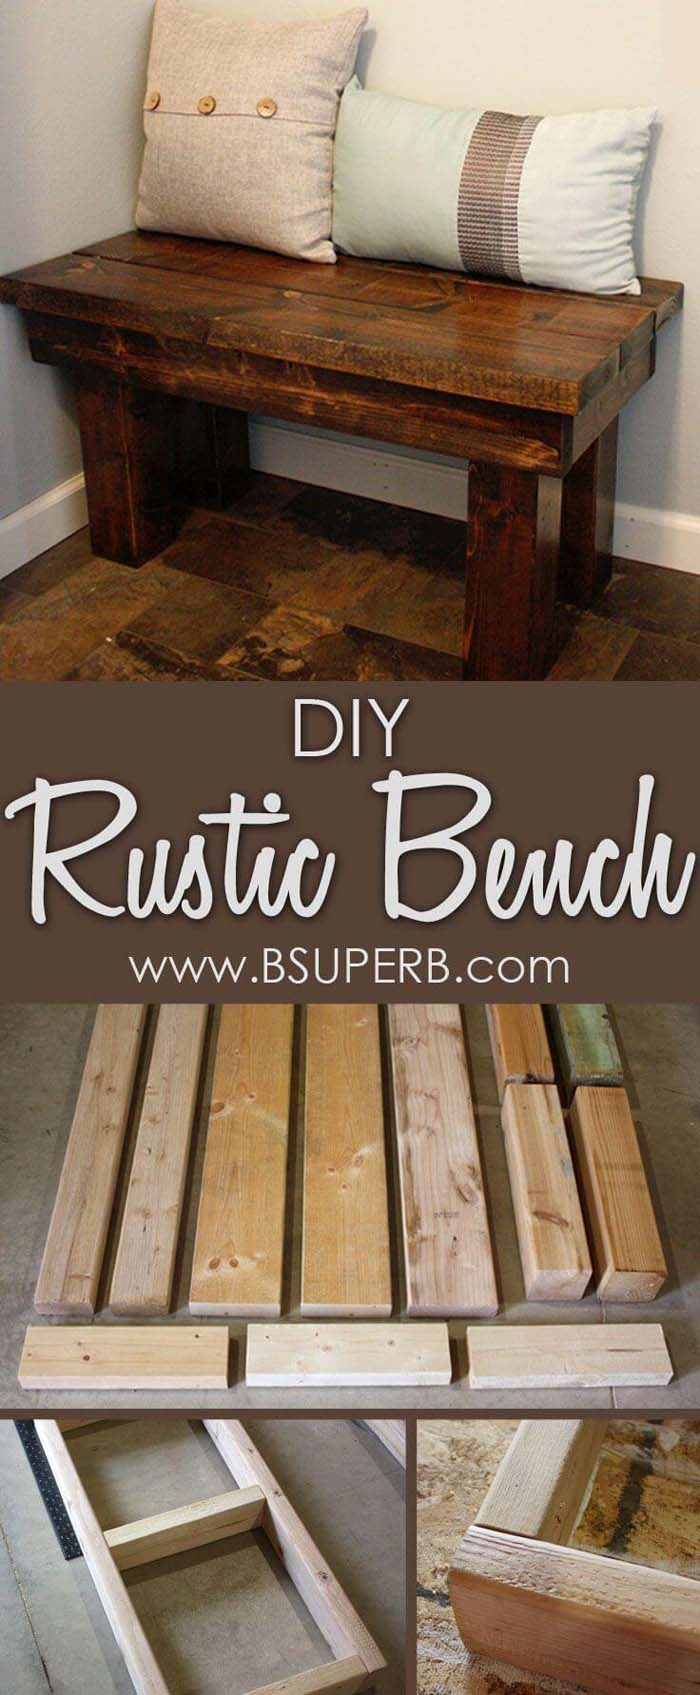 DIY Rustic Bench #reclaimed #wood #projects #decorhomeideas